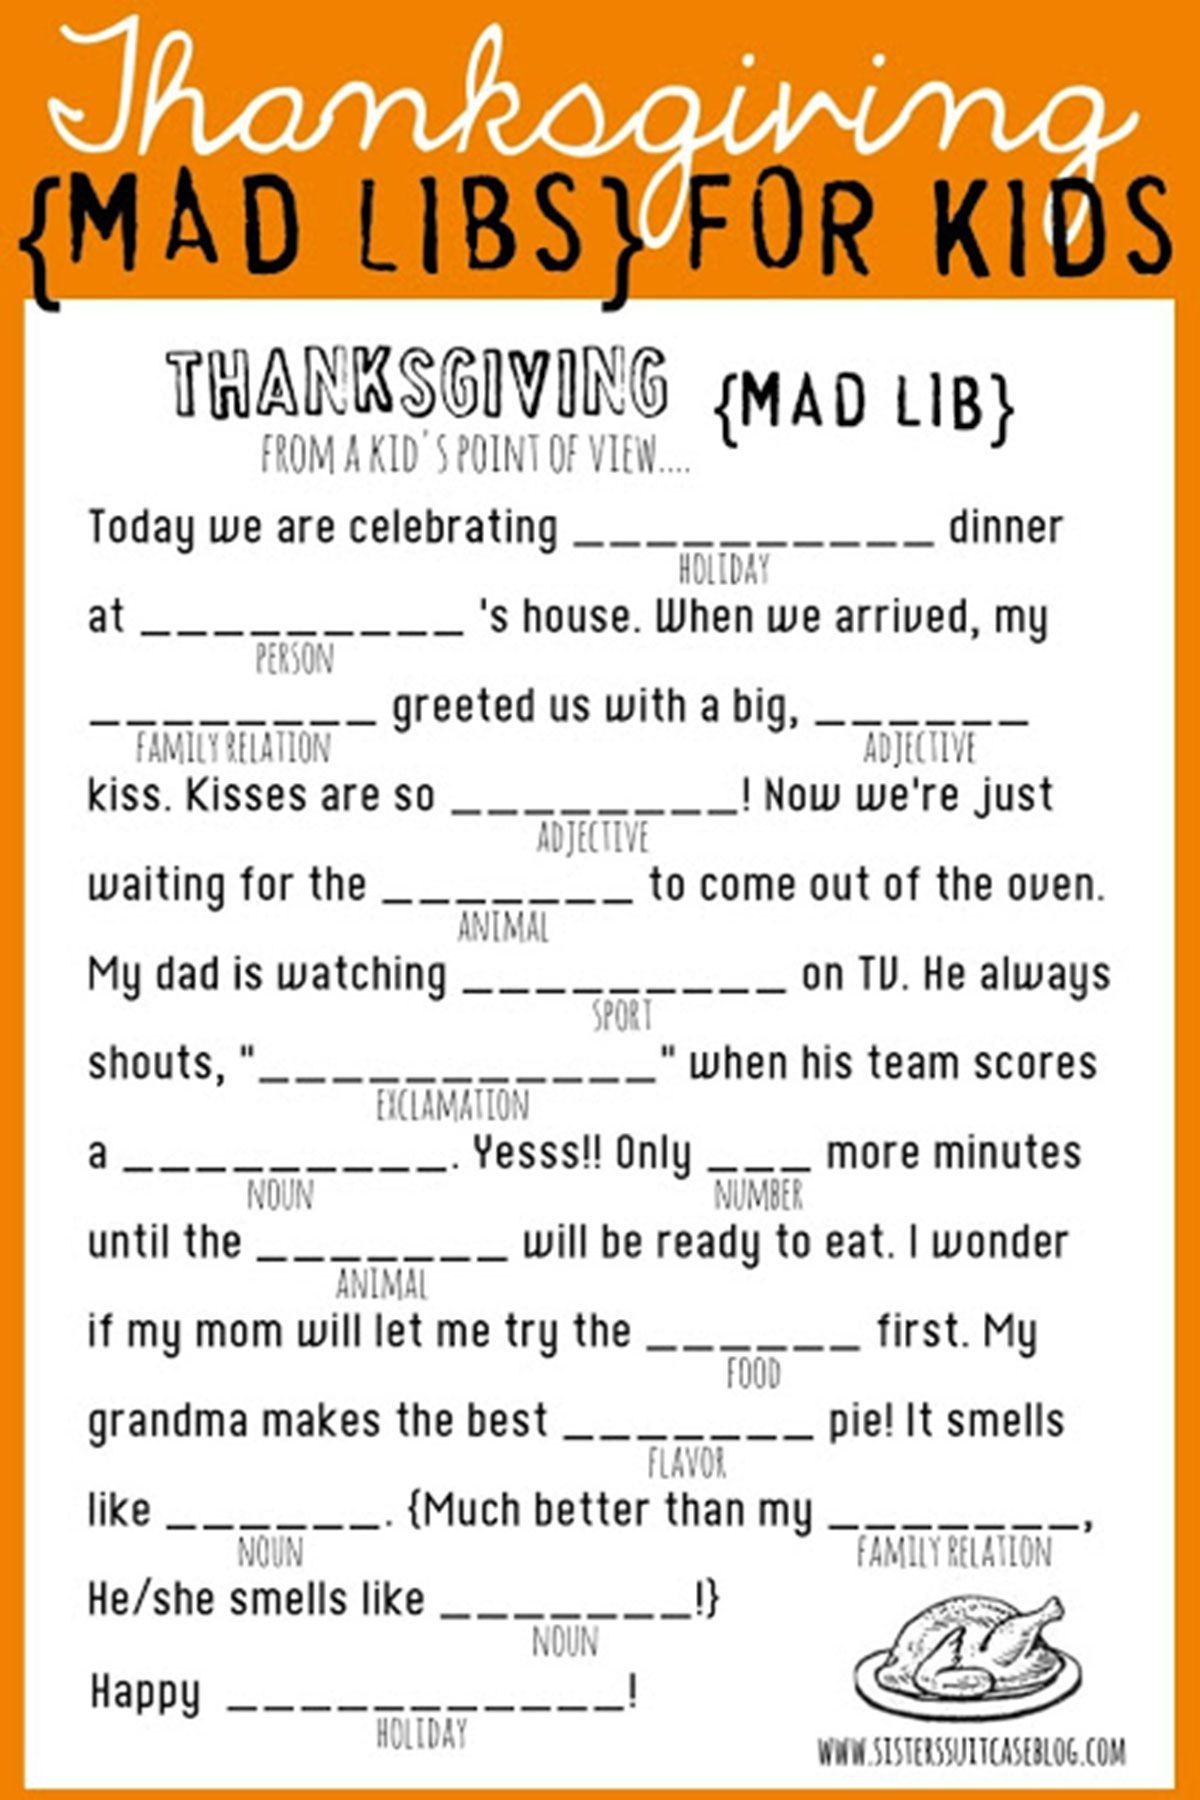 16 Fun Thanksgiving Games For Adults And Kids - Best Diy Games To - Free Printable Thanksgiving Games For Adults